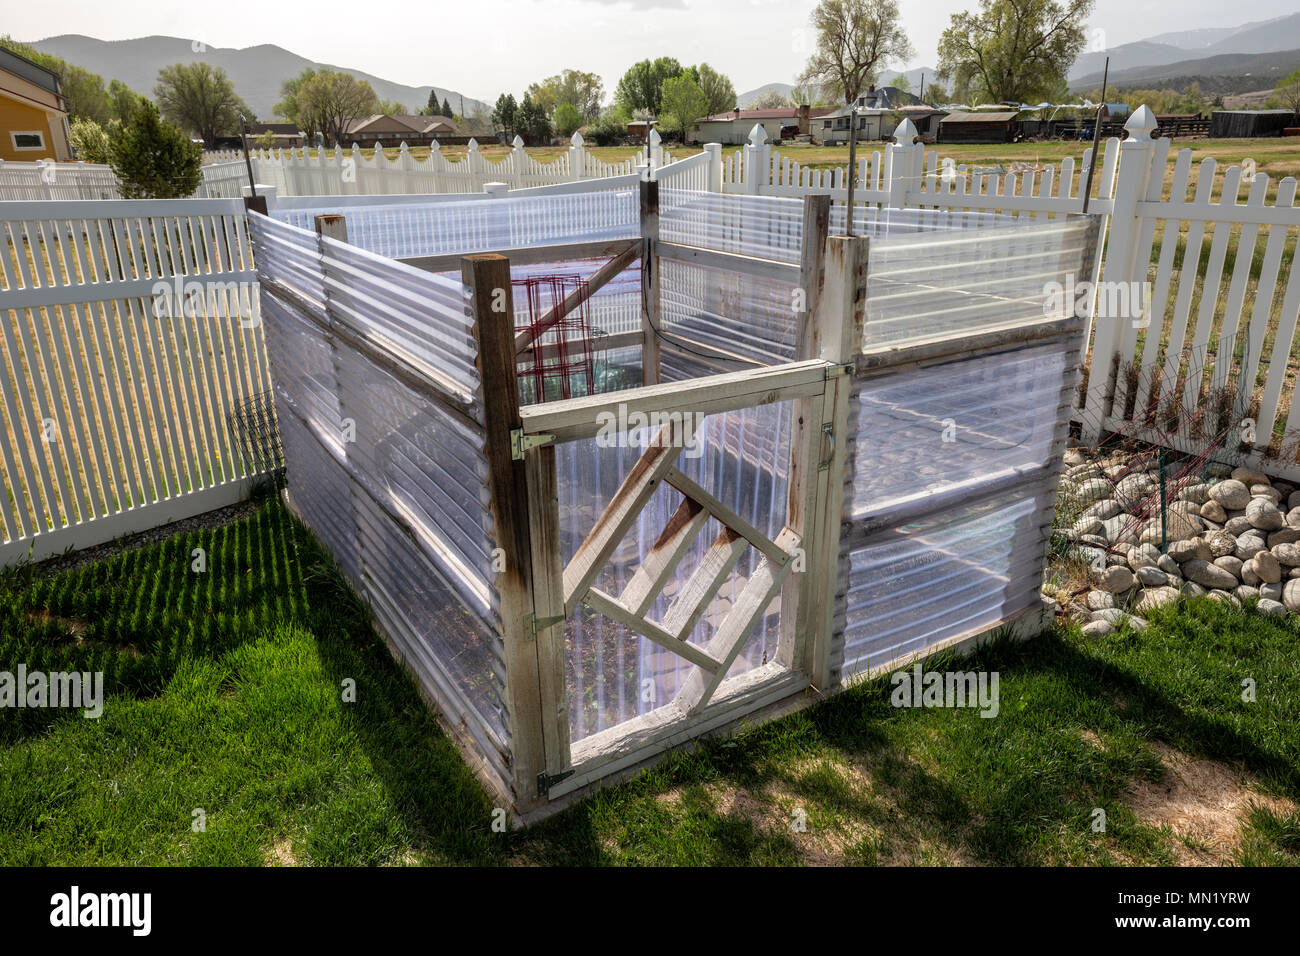 Residential vegetable garden with fiberglass panel walls to deflect wind Stock Photo